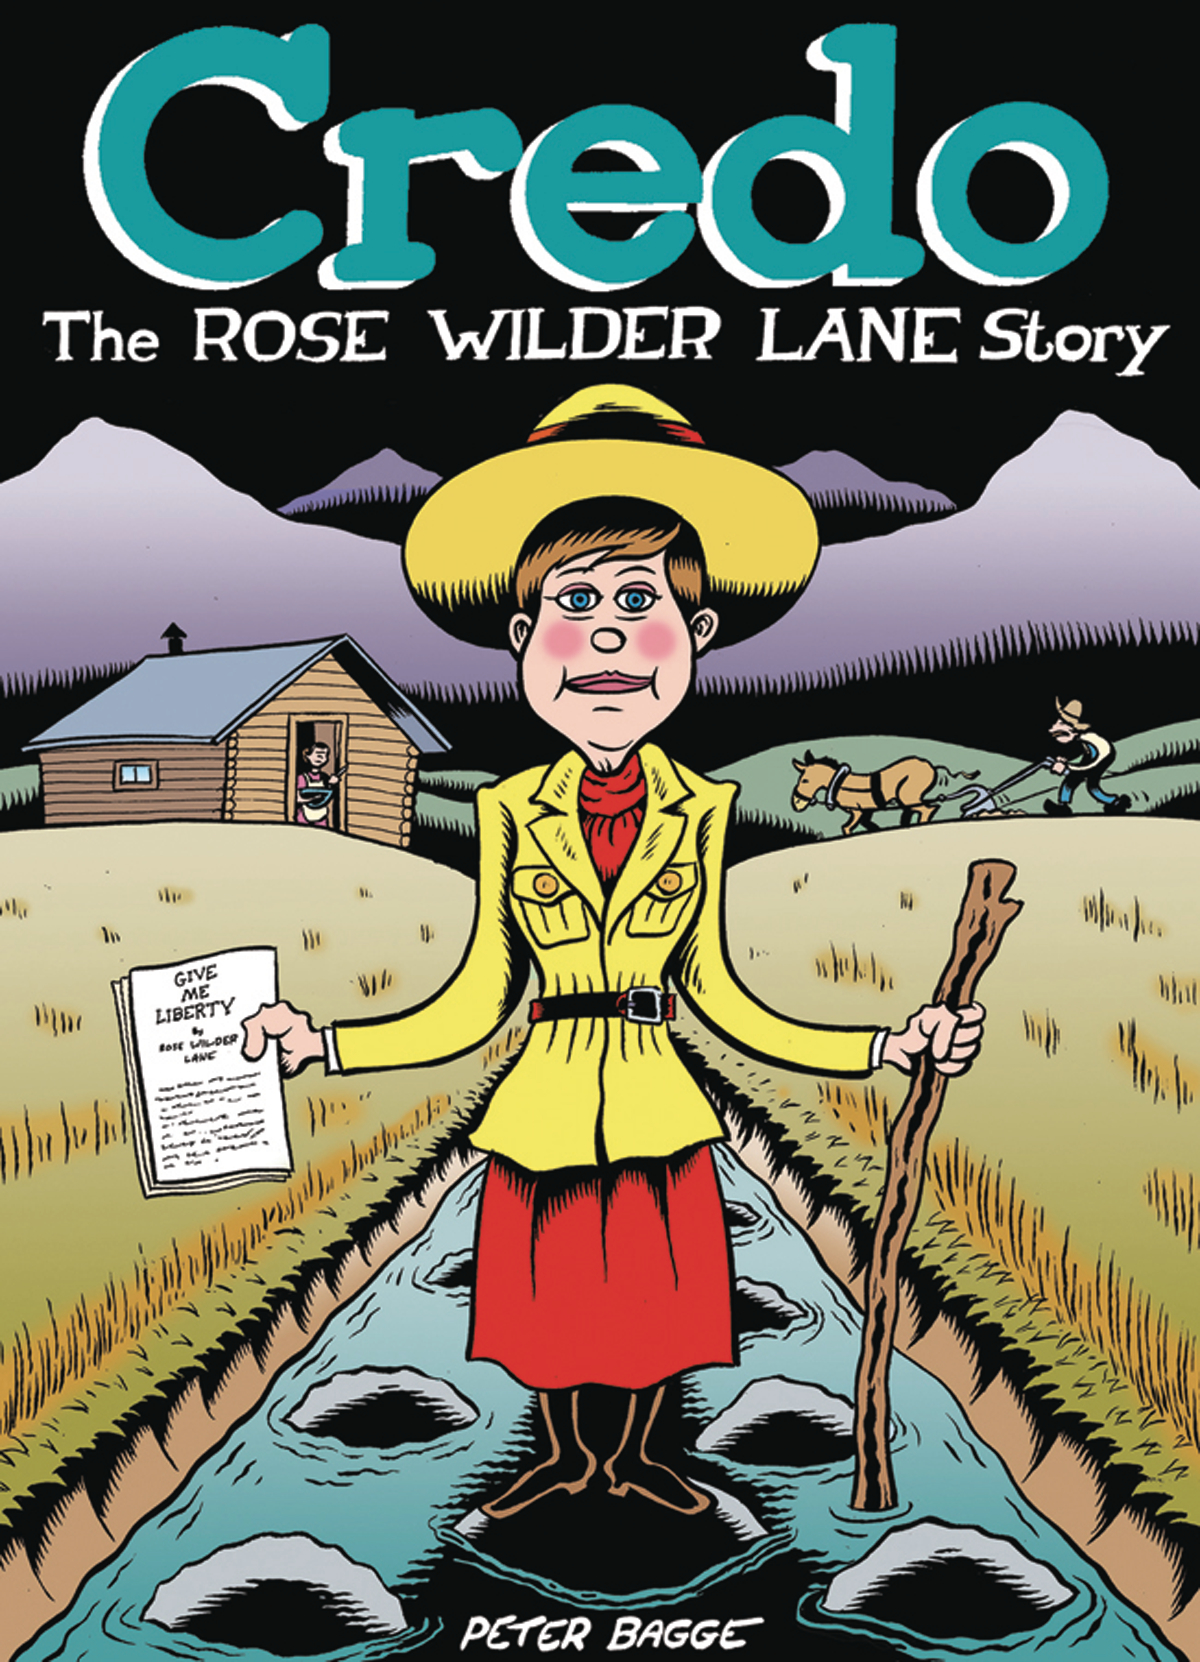 Credo: The Rose Wilder Lane Story (2019) by Peter Bagge.